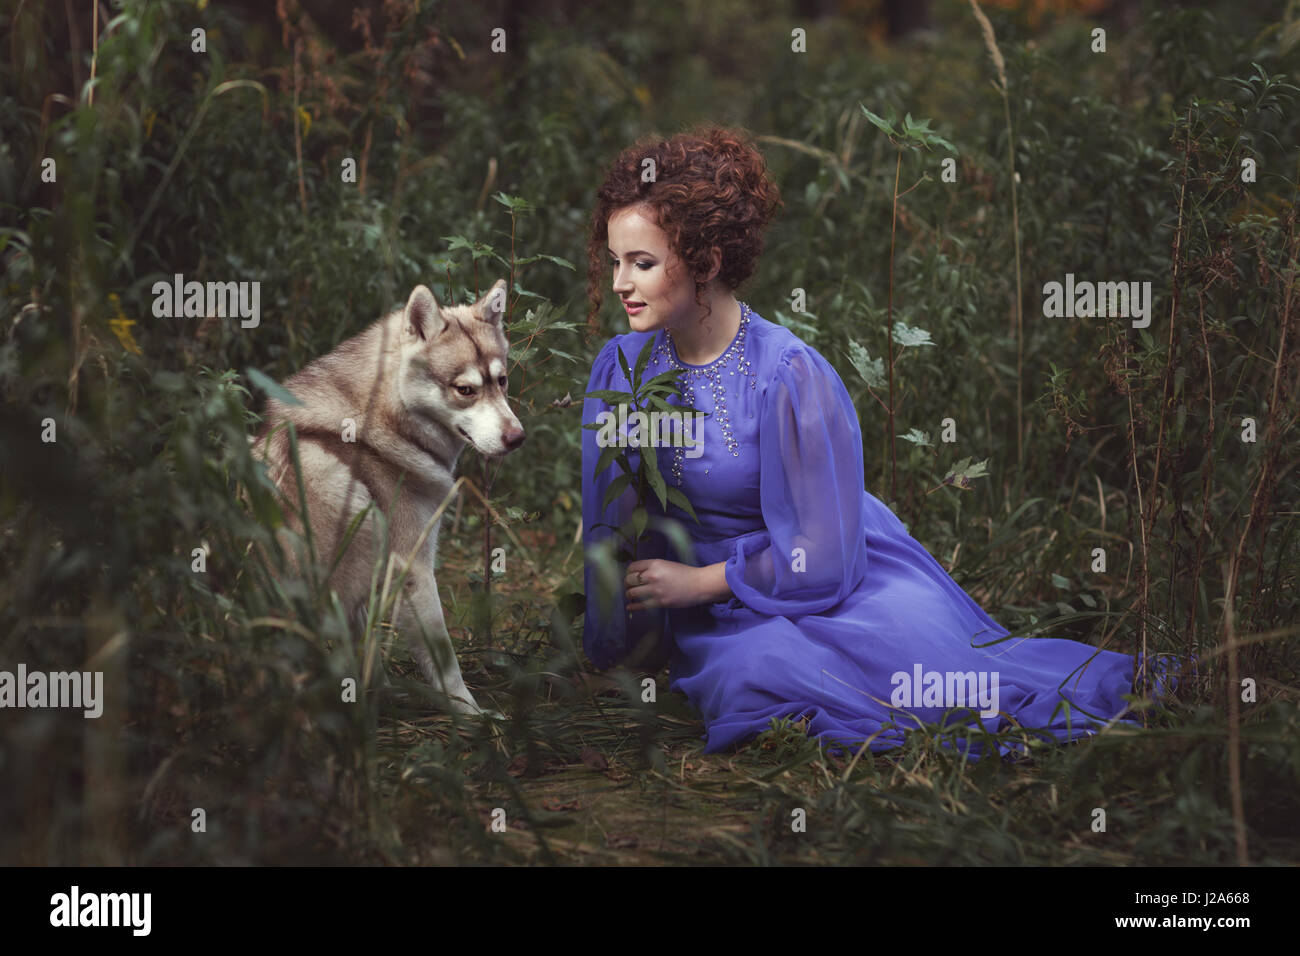 Girl says the dog tale, they are in the fairy forest. - Stock Image